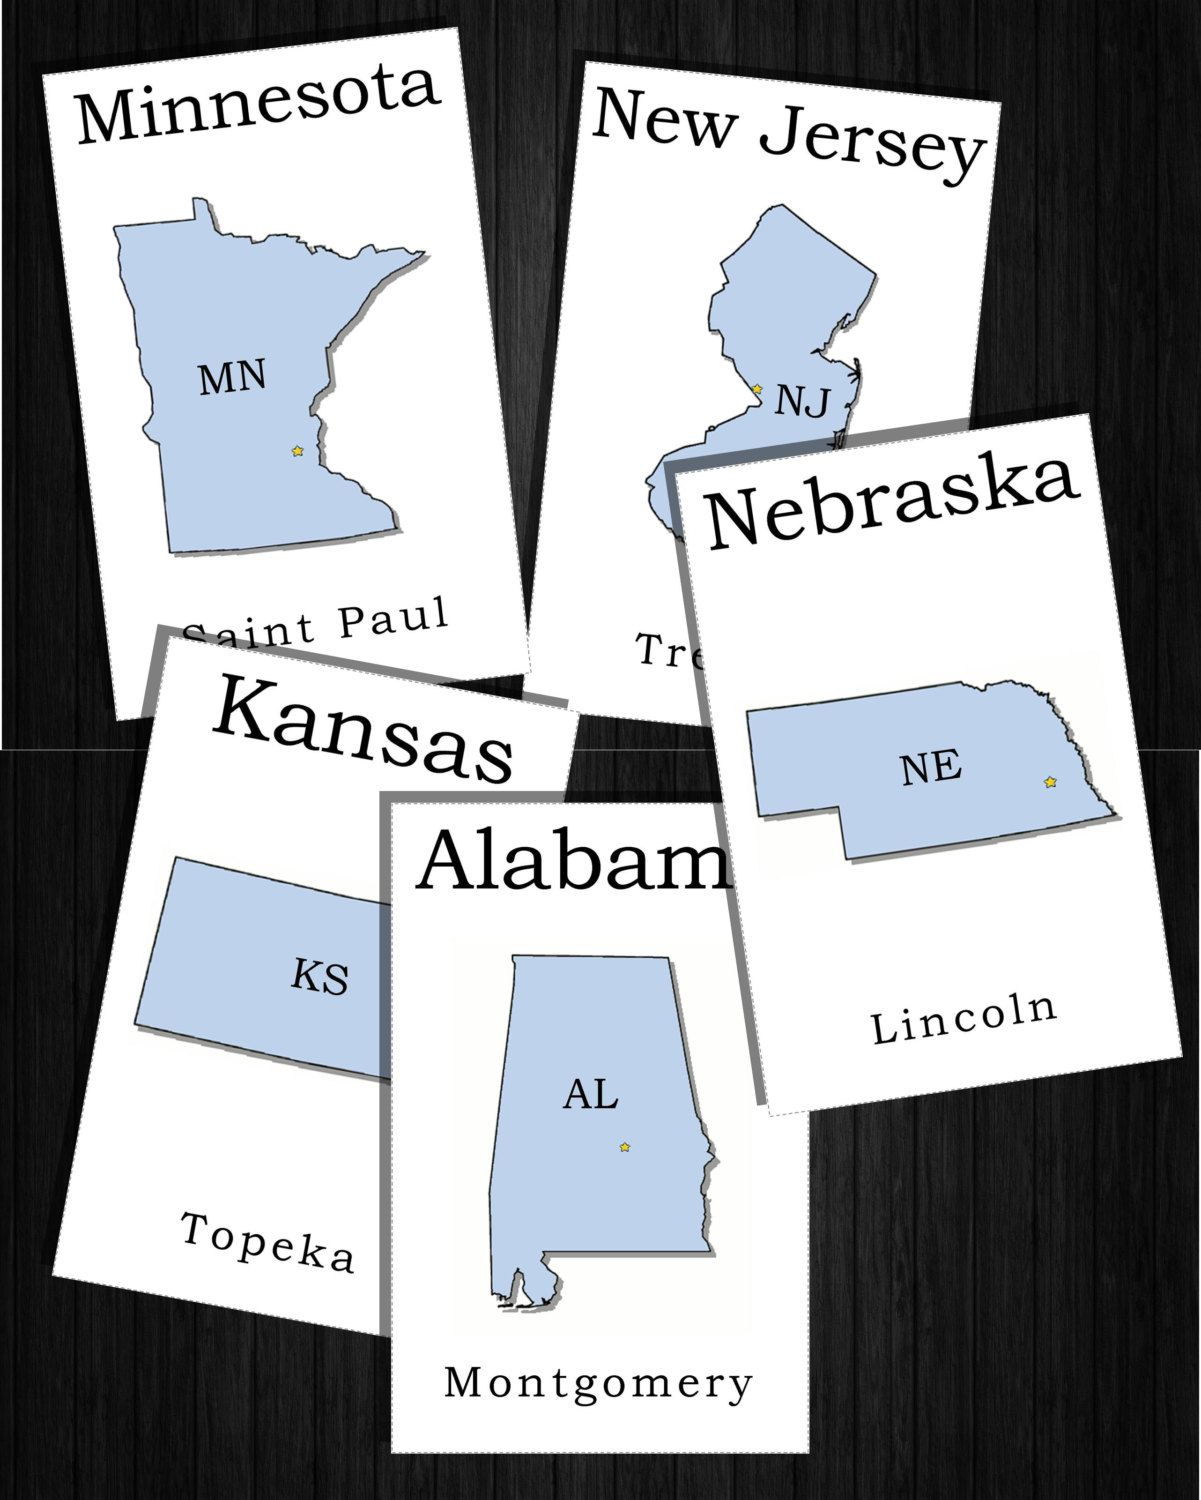 Download All 50 States And Capitals Flashcards With State Shape And Abbreviations